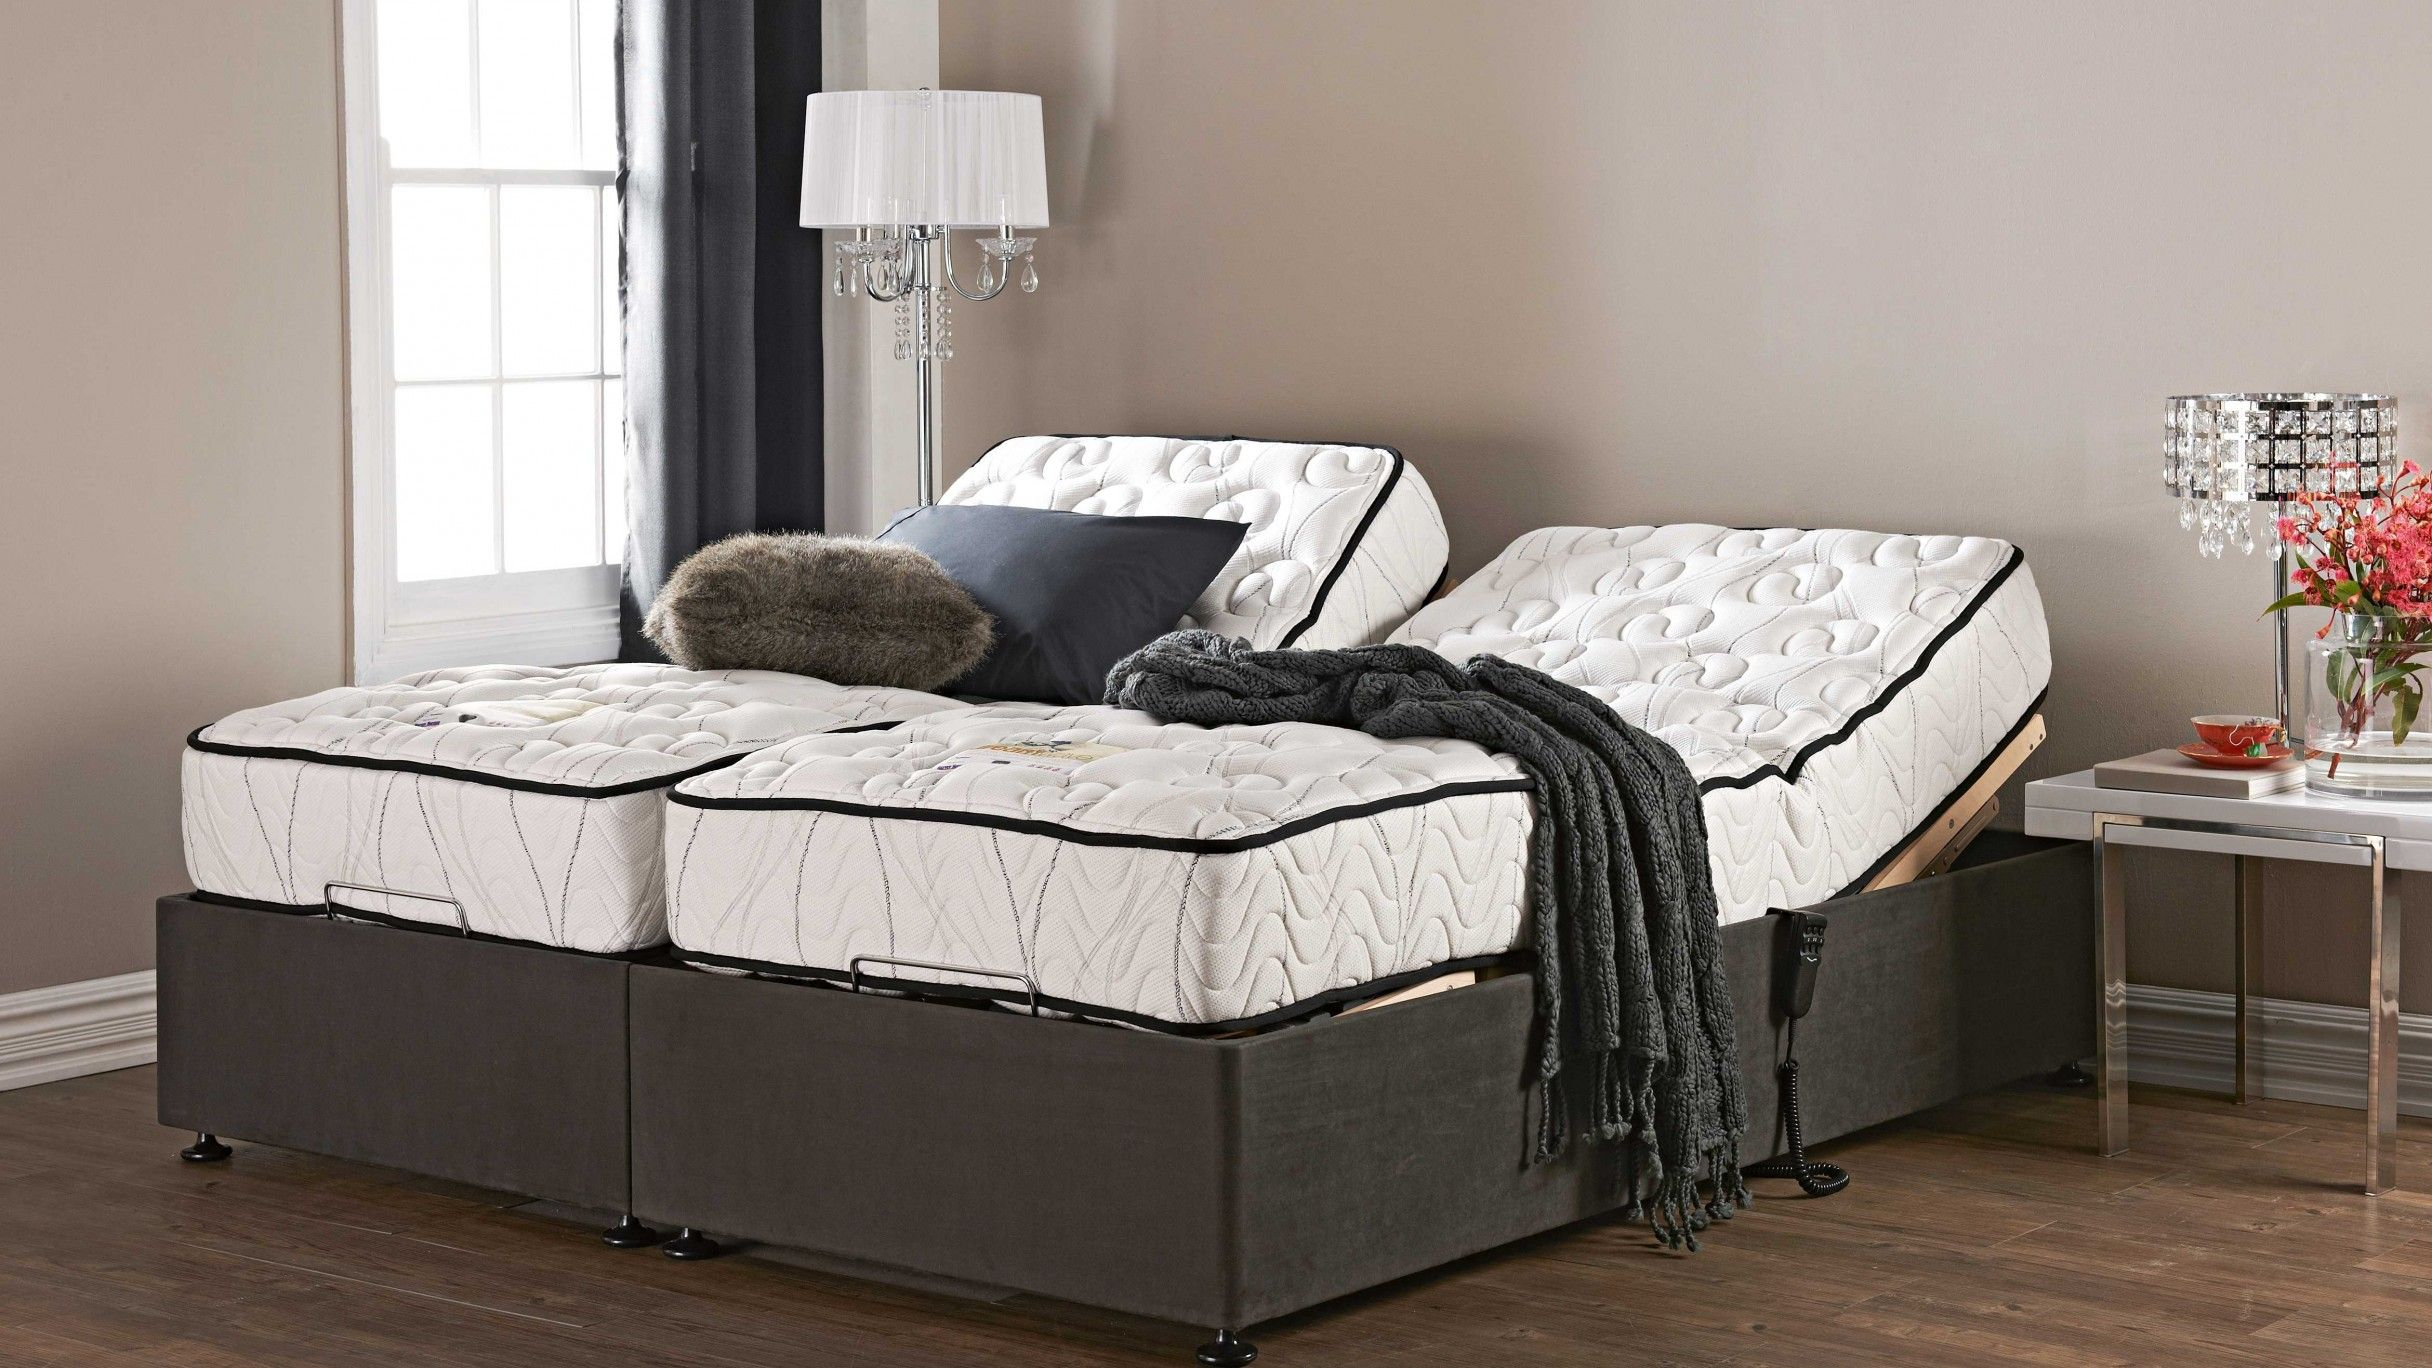 Pin by Town & Country Mattresses & Be on Custom Made Beds